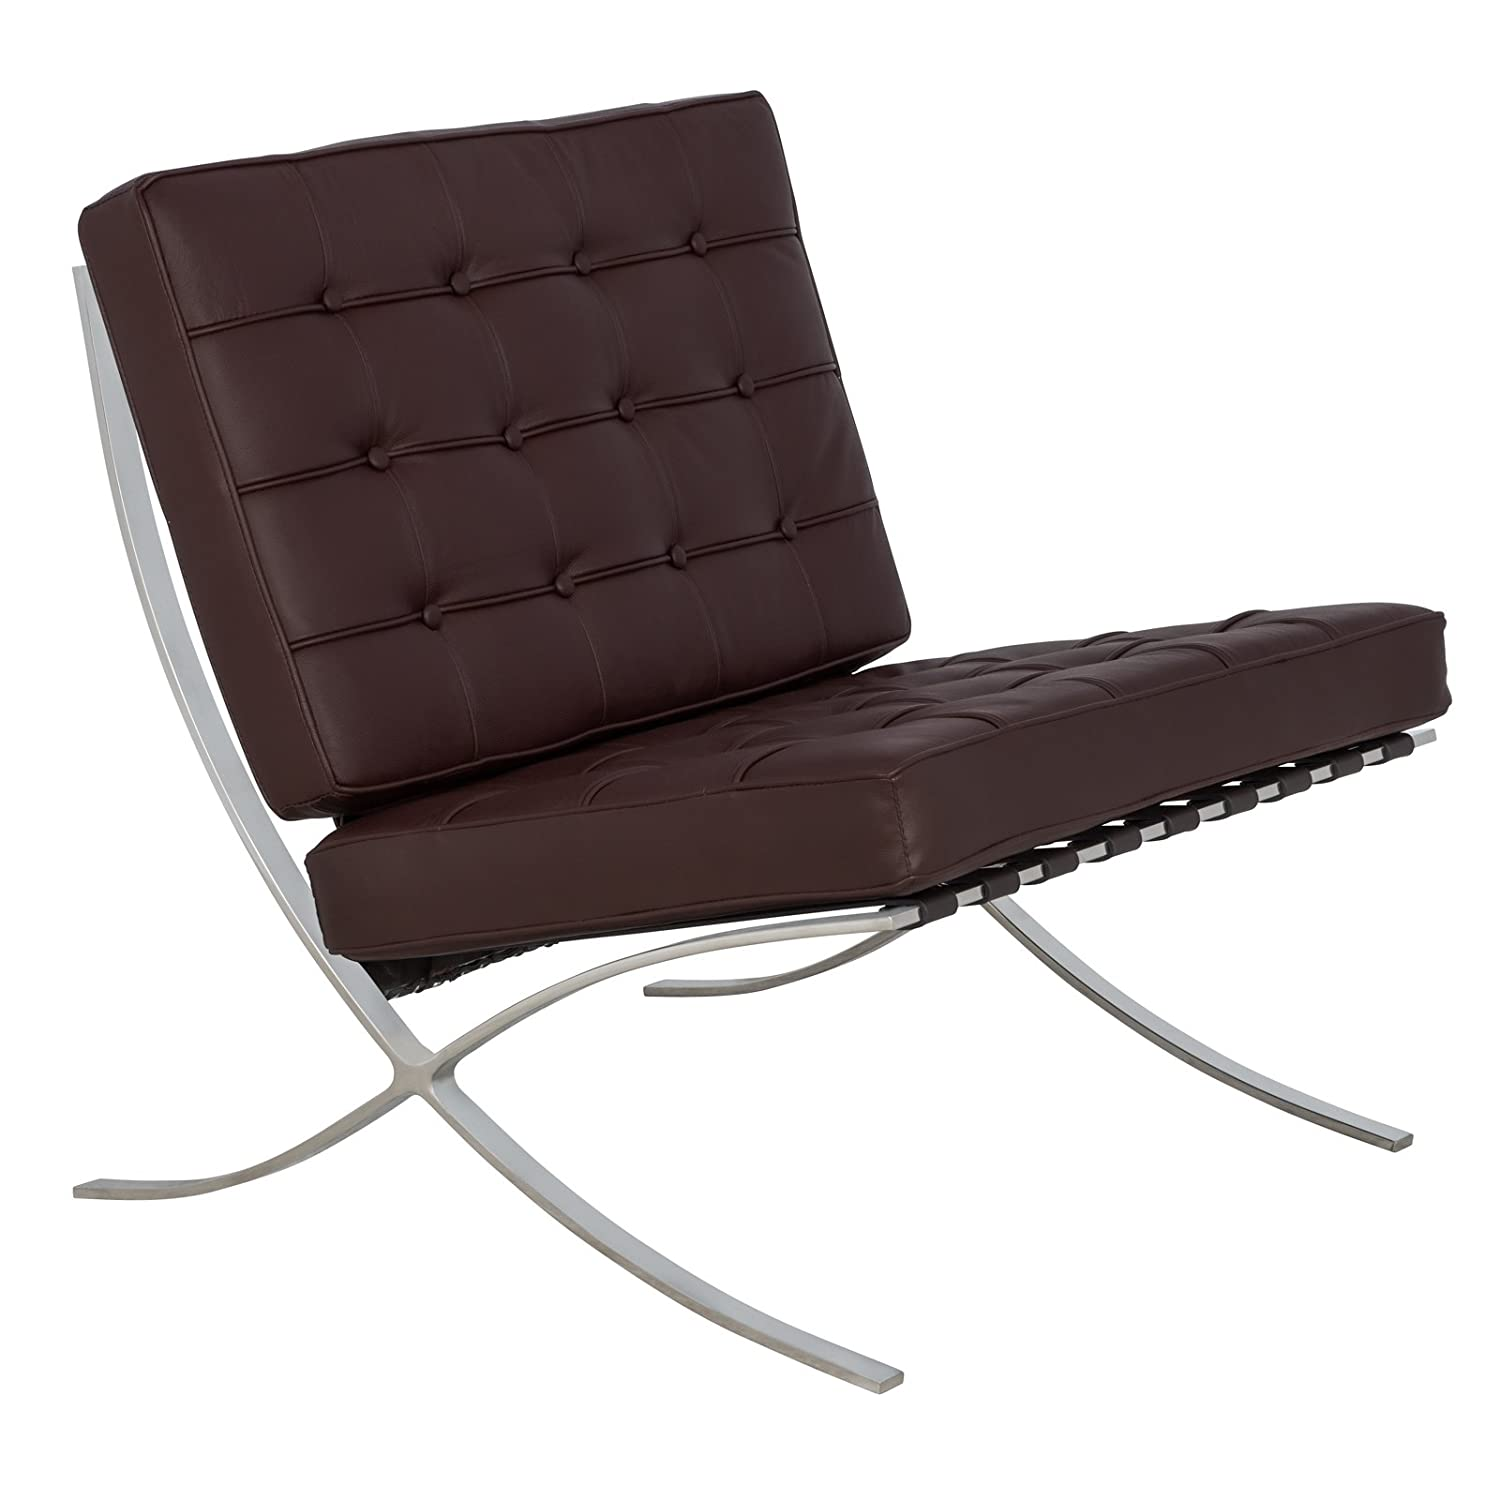 LeisureMod Bellefonte Modern Leather Pavilion Chair in Dark Brown